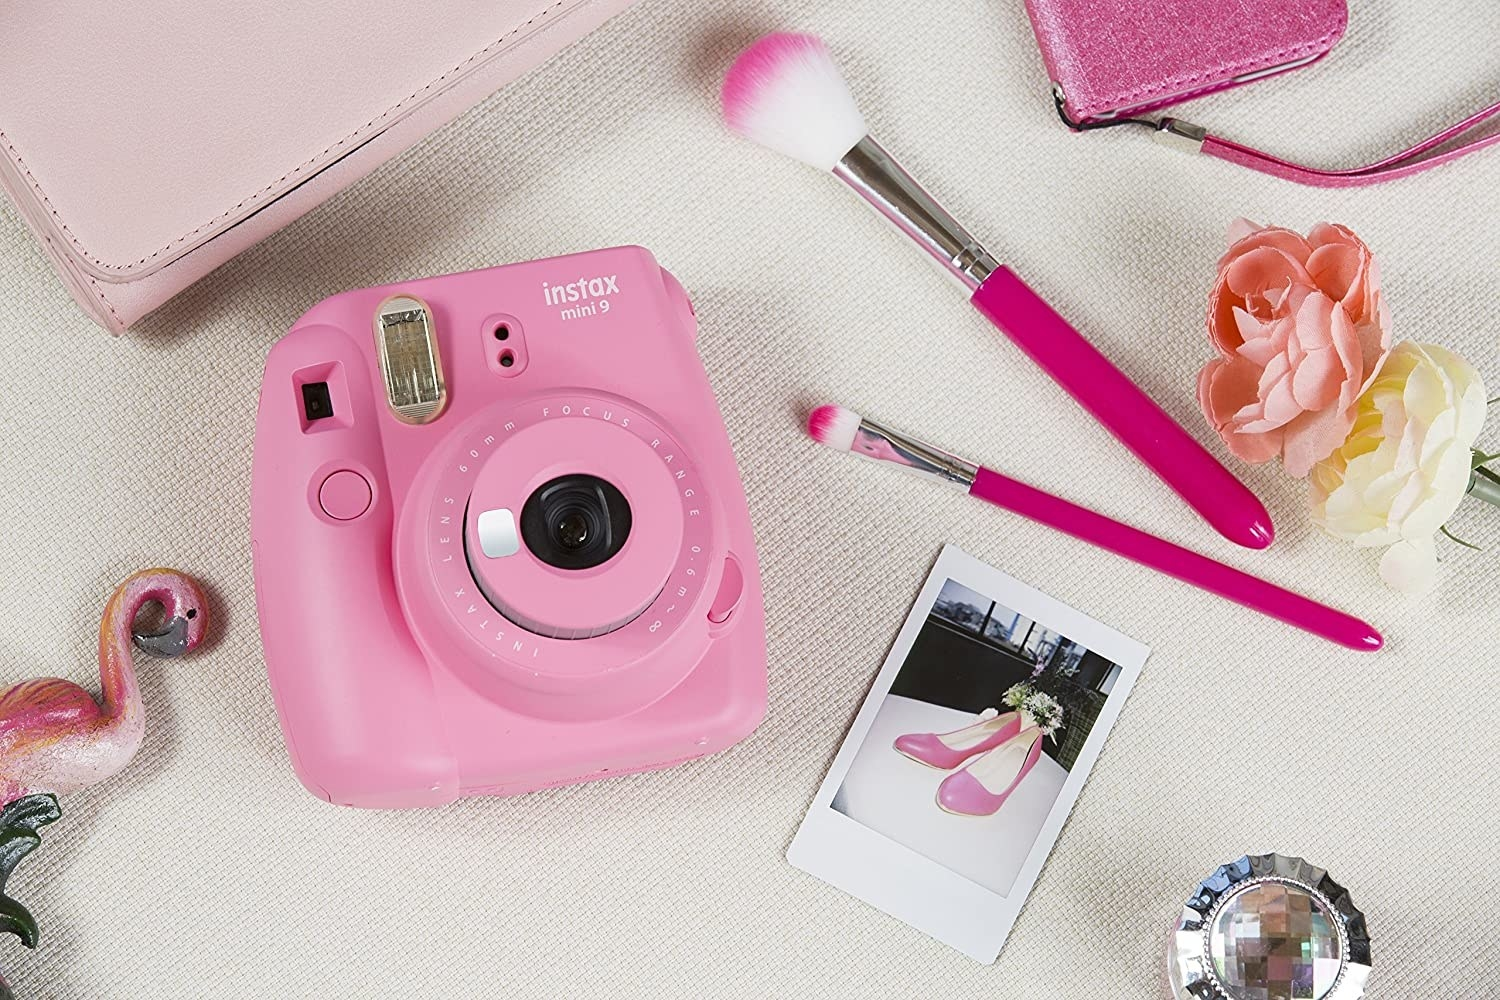 A pink Instant Camera with pink items around it